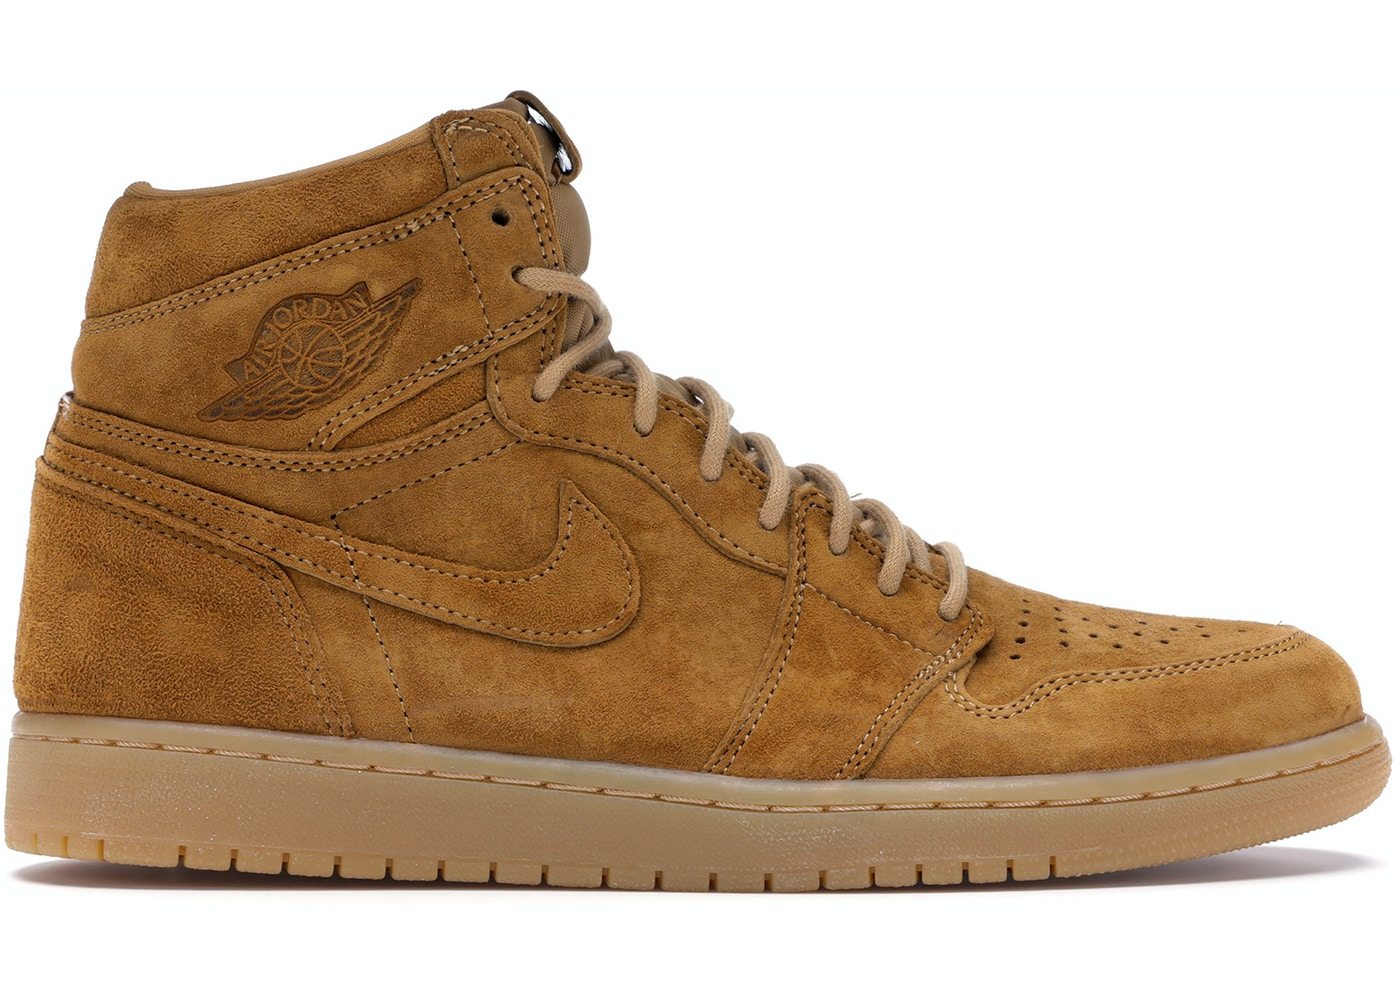 uk availability cb0ef 366a2 Jordan 1 Retro High Wheat